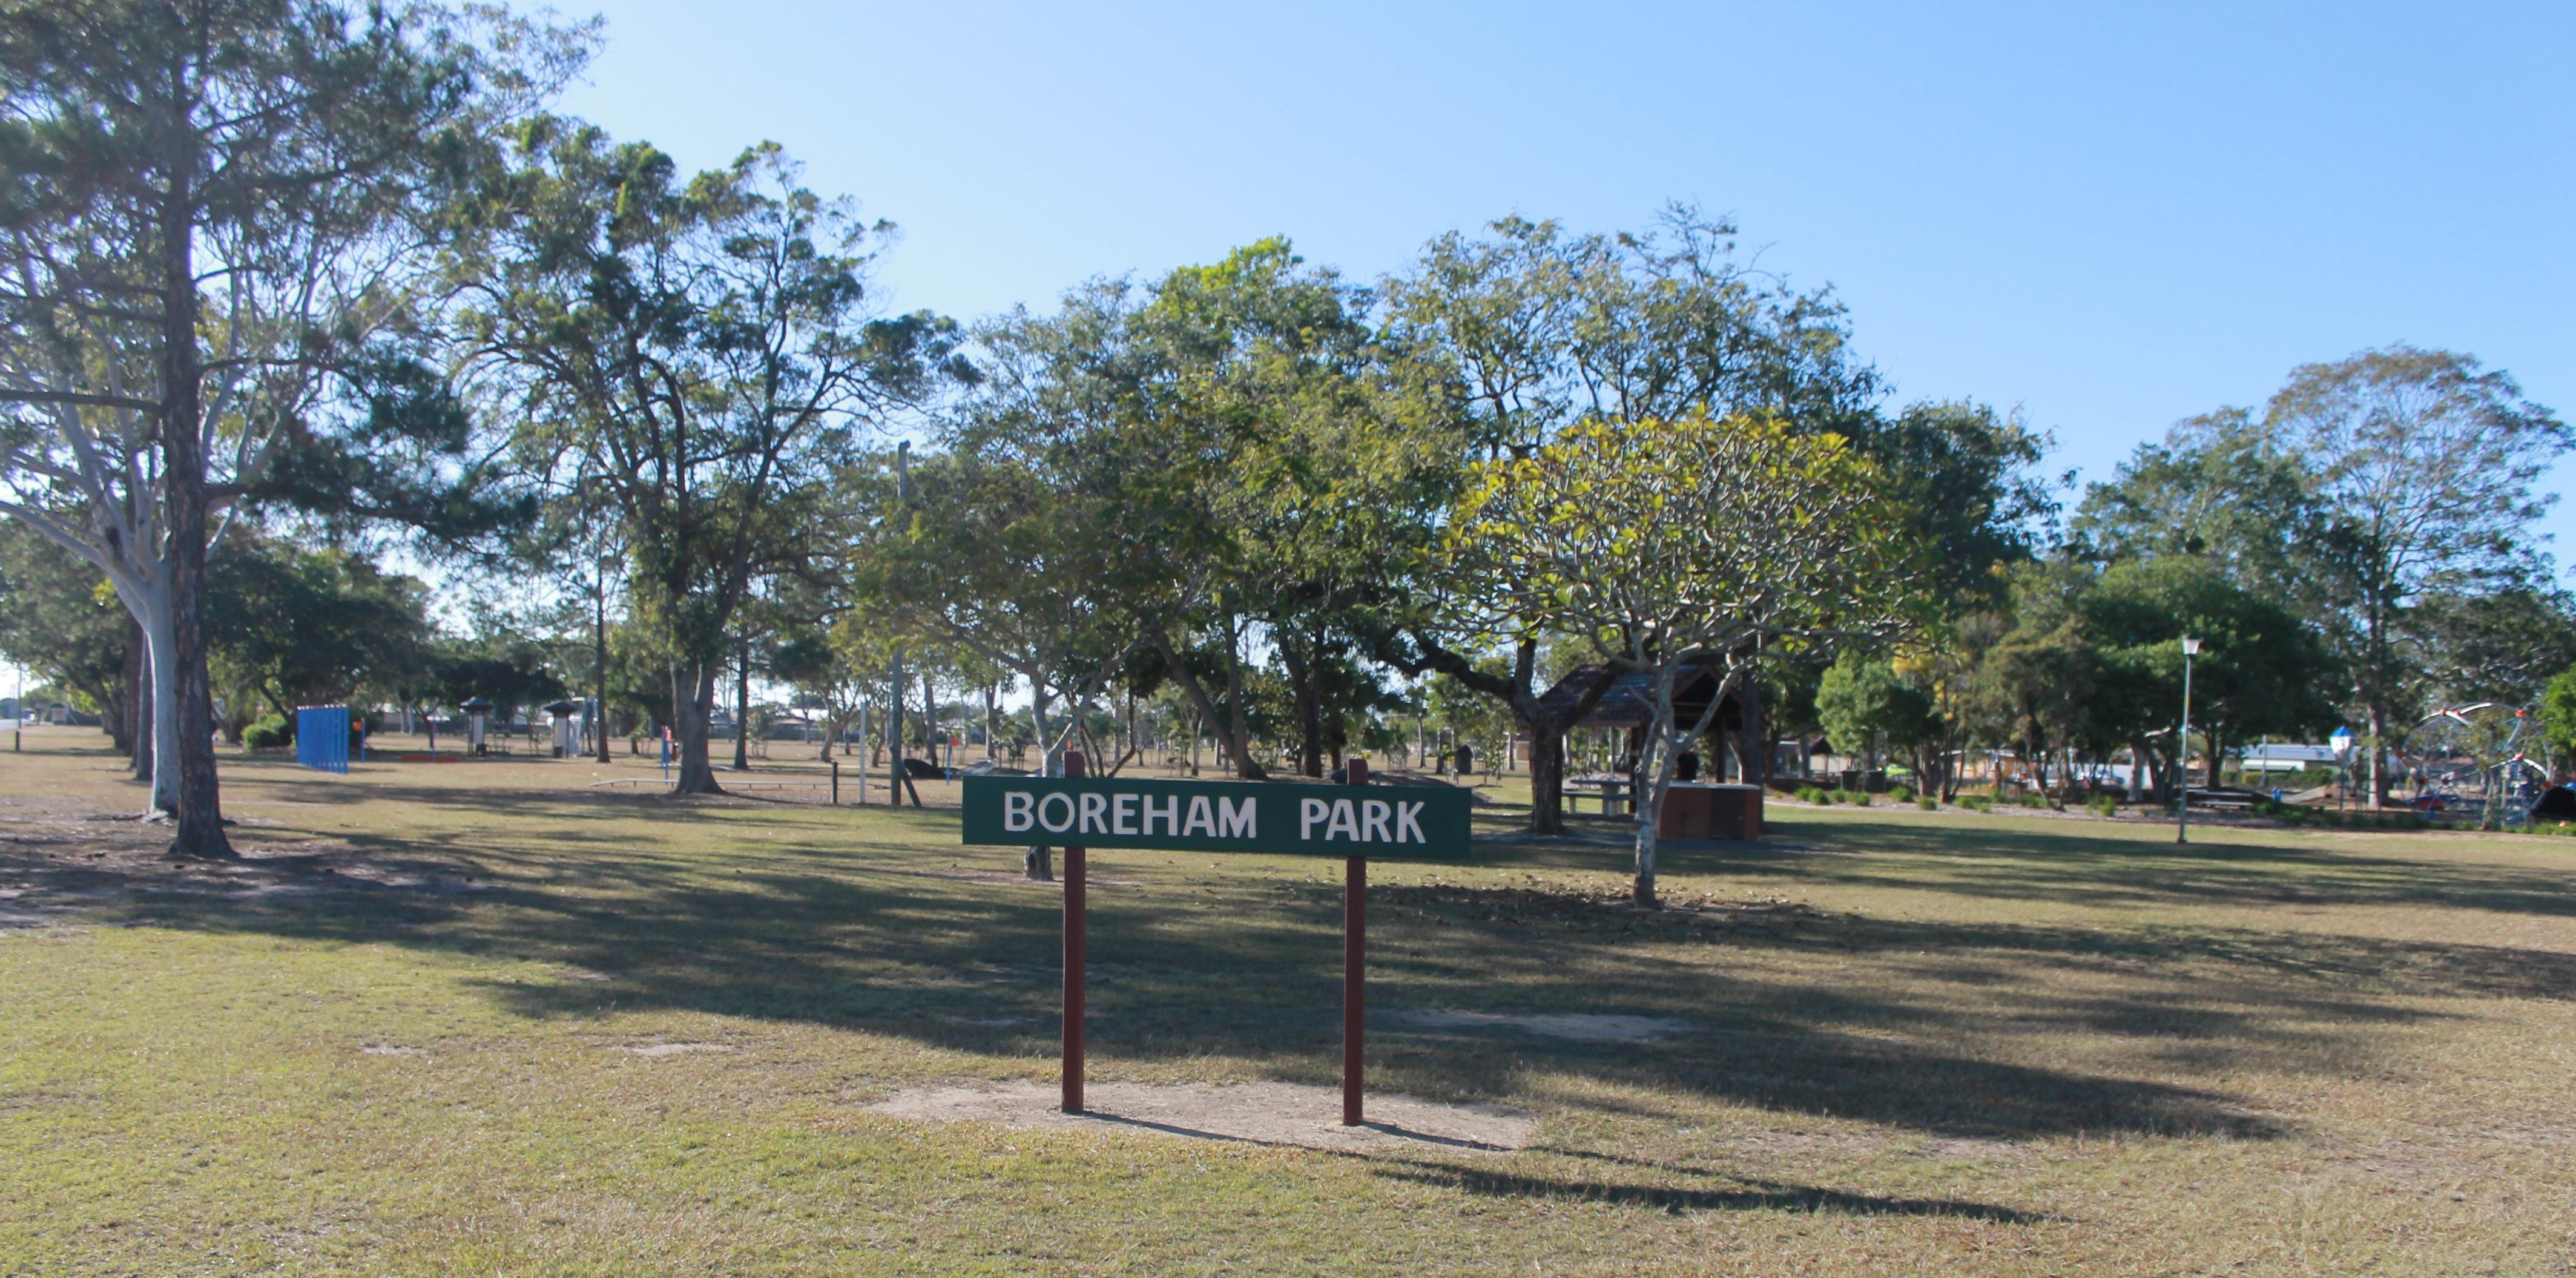 Boreham Park and Playground - Bundaberg Accommodation